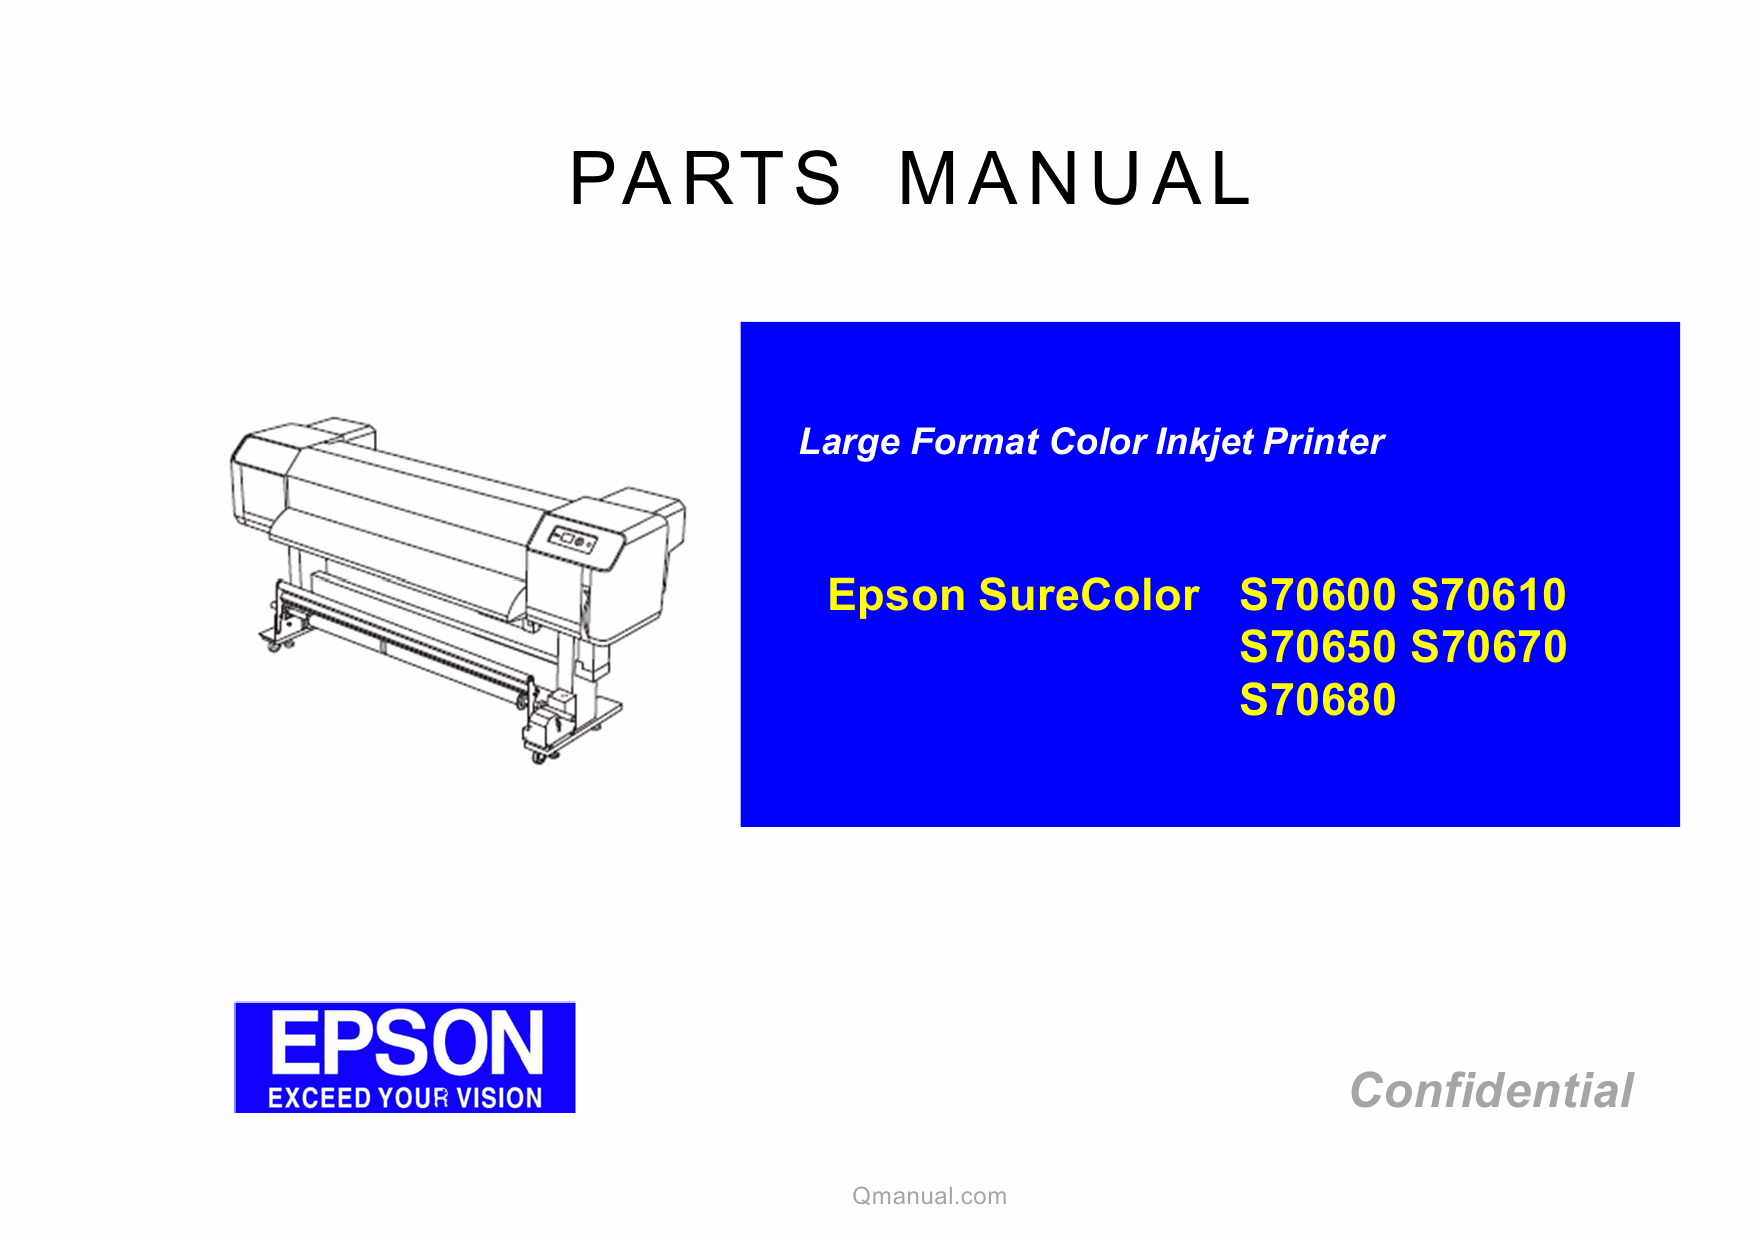 EPSON SureColor S70600 S70610 S70650 S70670 S70680 Parts Manual-1